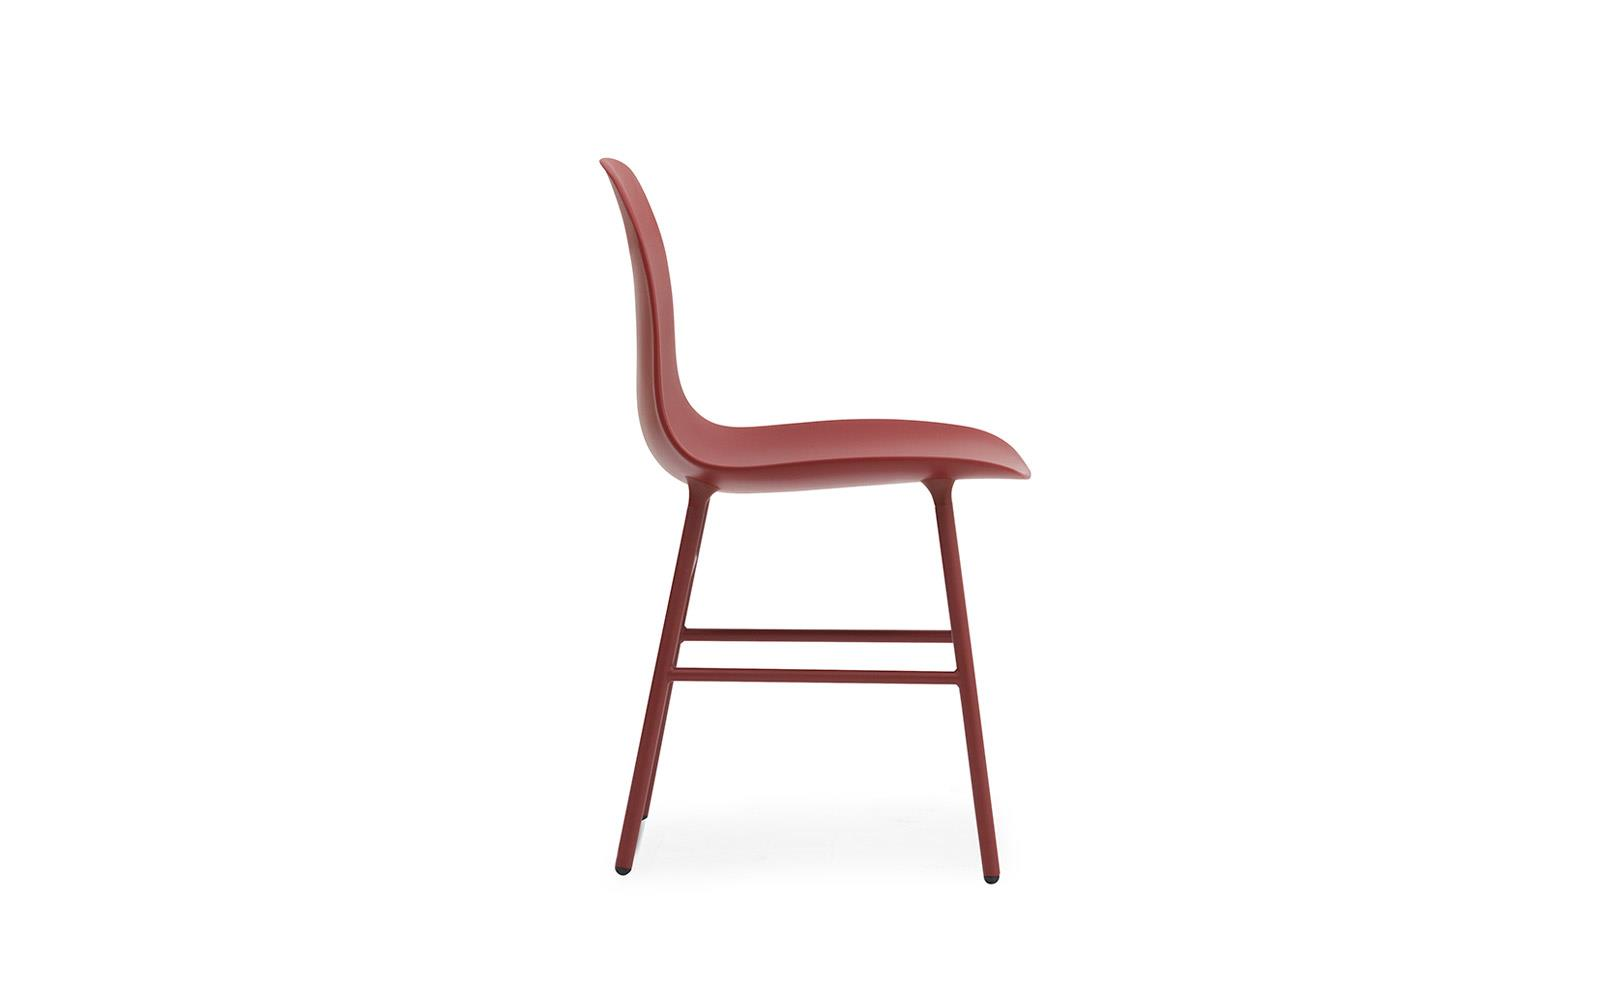 chair steel legs bedroom malaysia form molded plastic shell with steel3